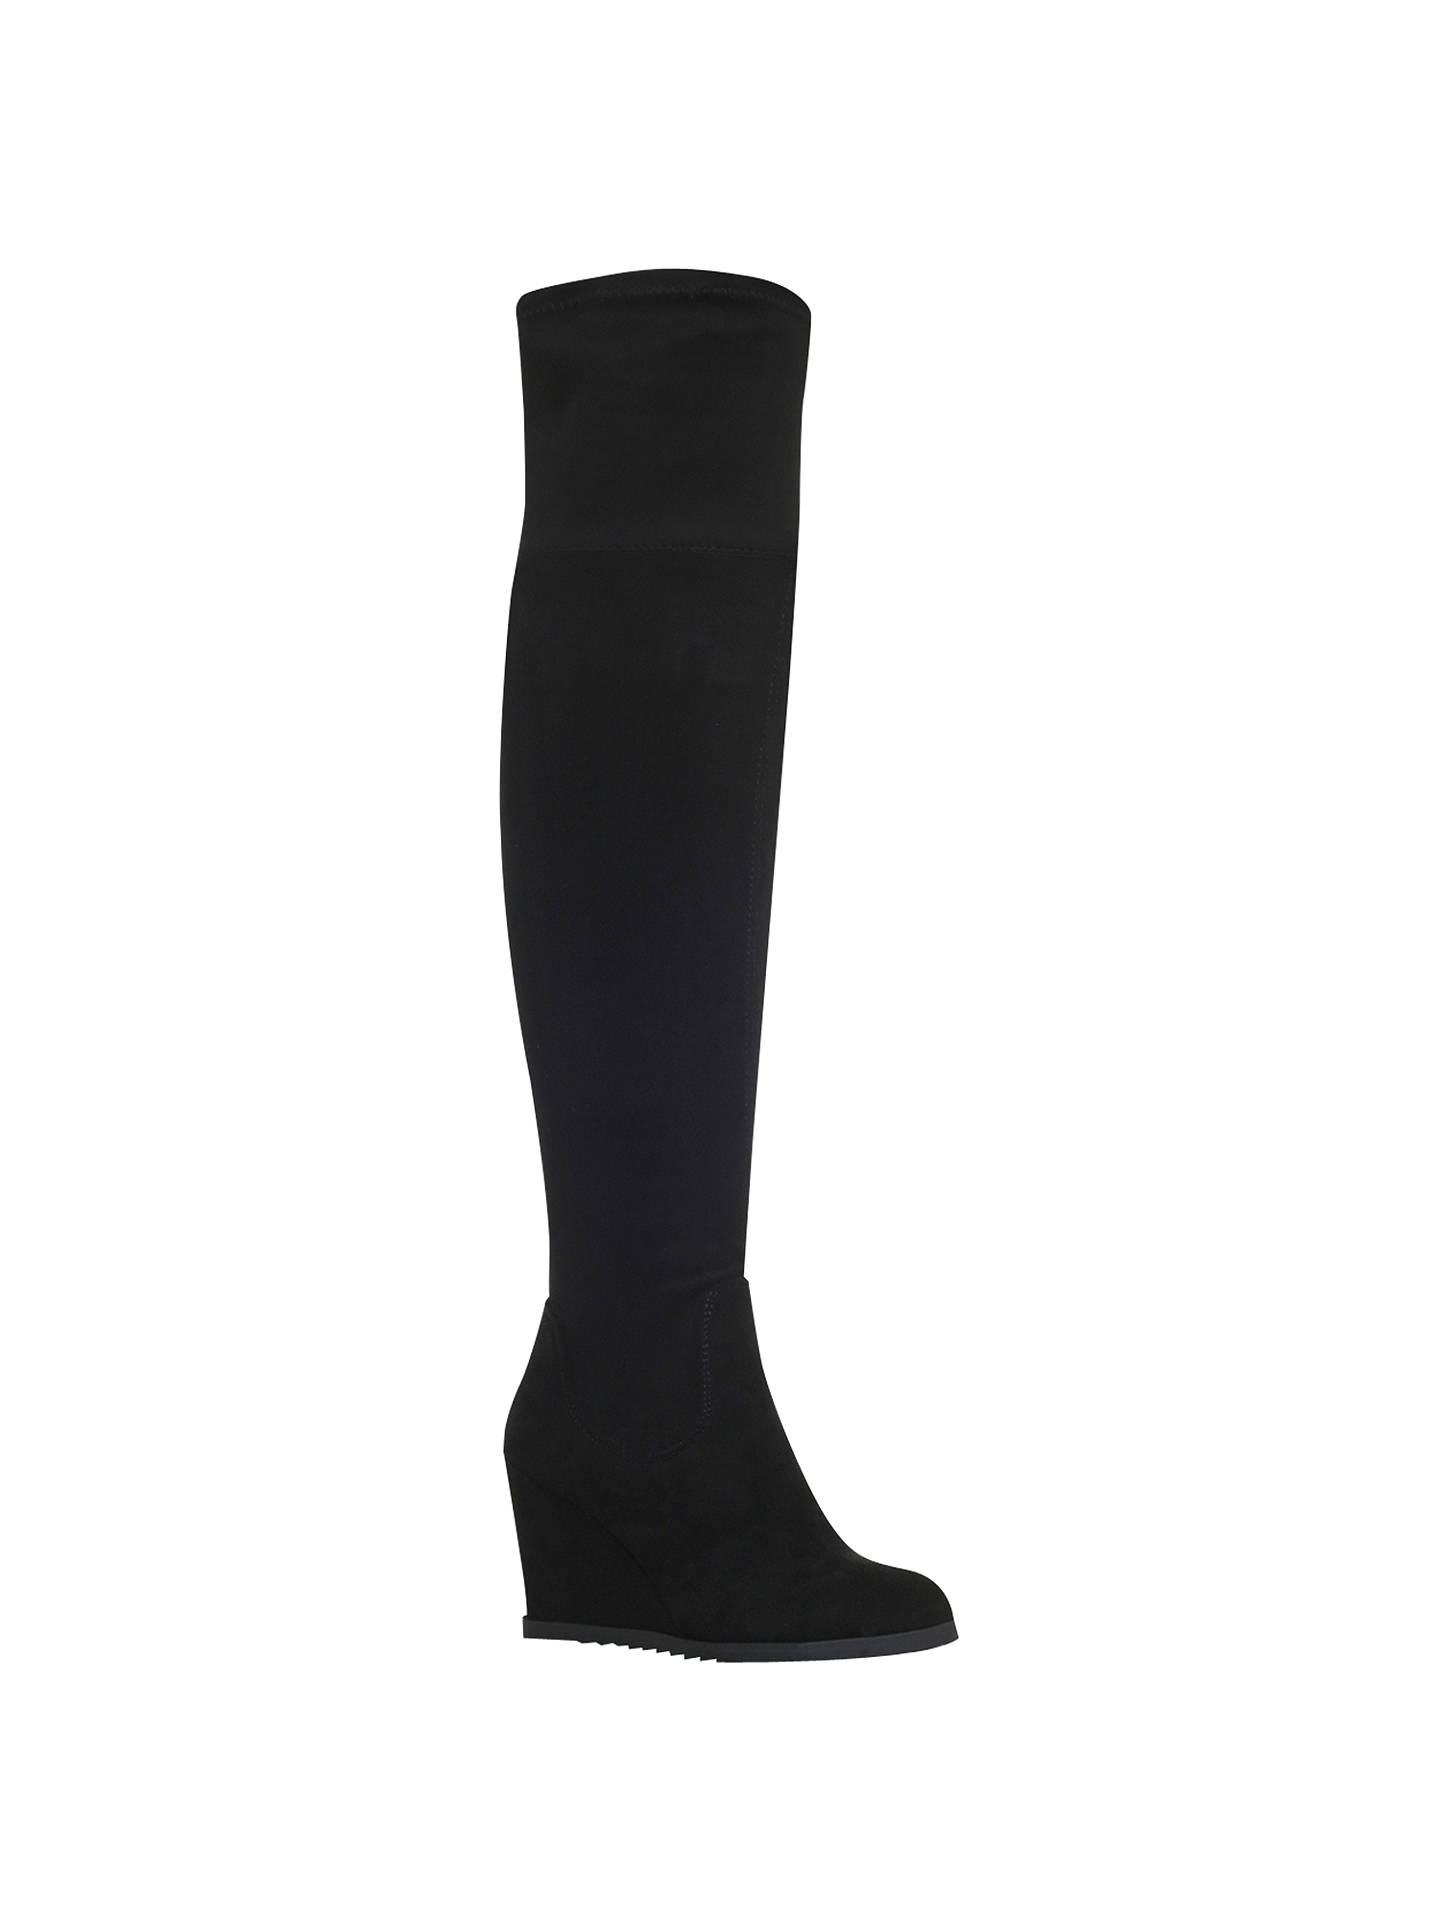 70db428ee54 Miss KG Vivien Wedge Heeled Over the Knee Boots at John Lewis   Partners